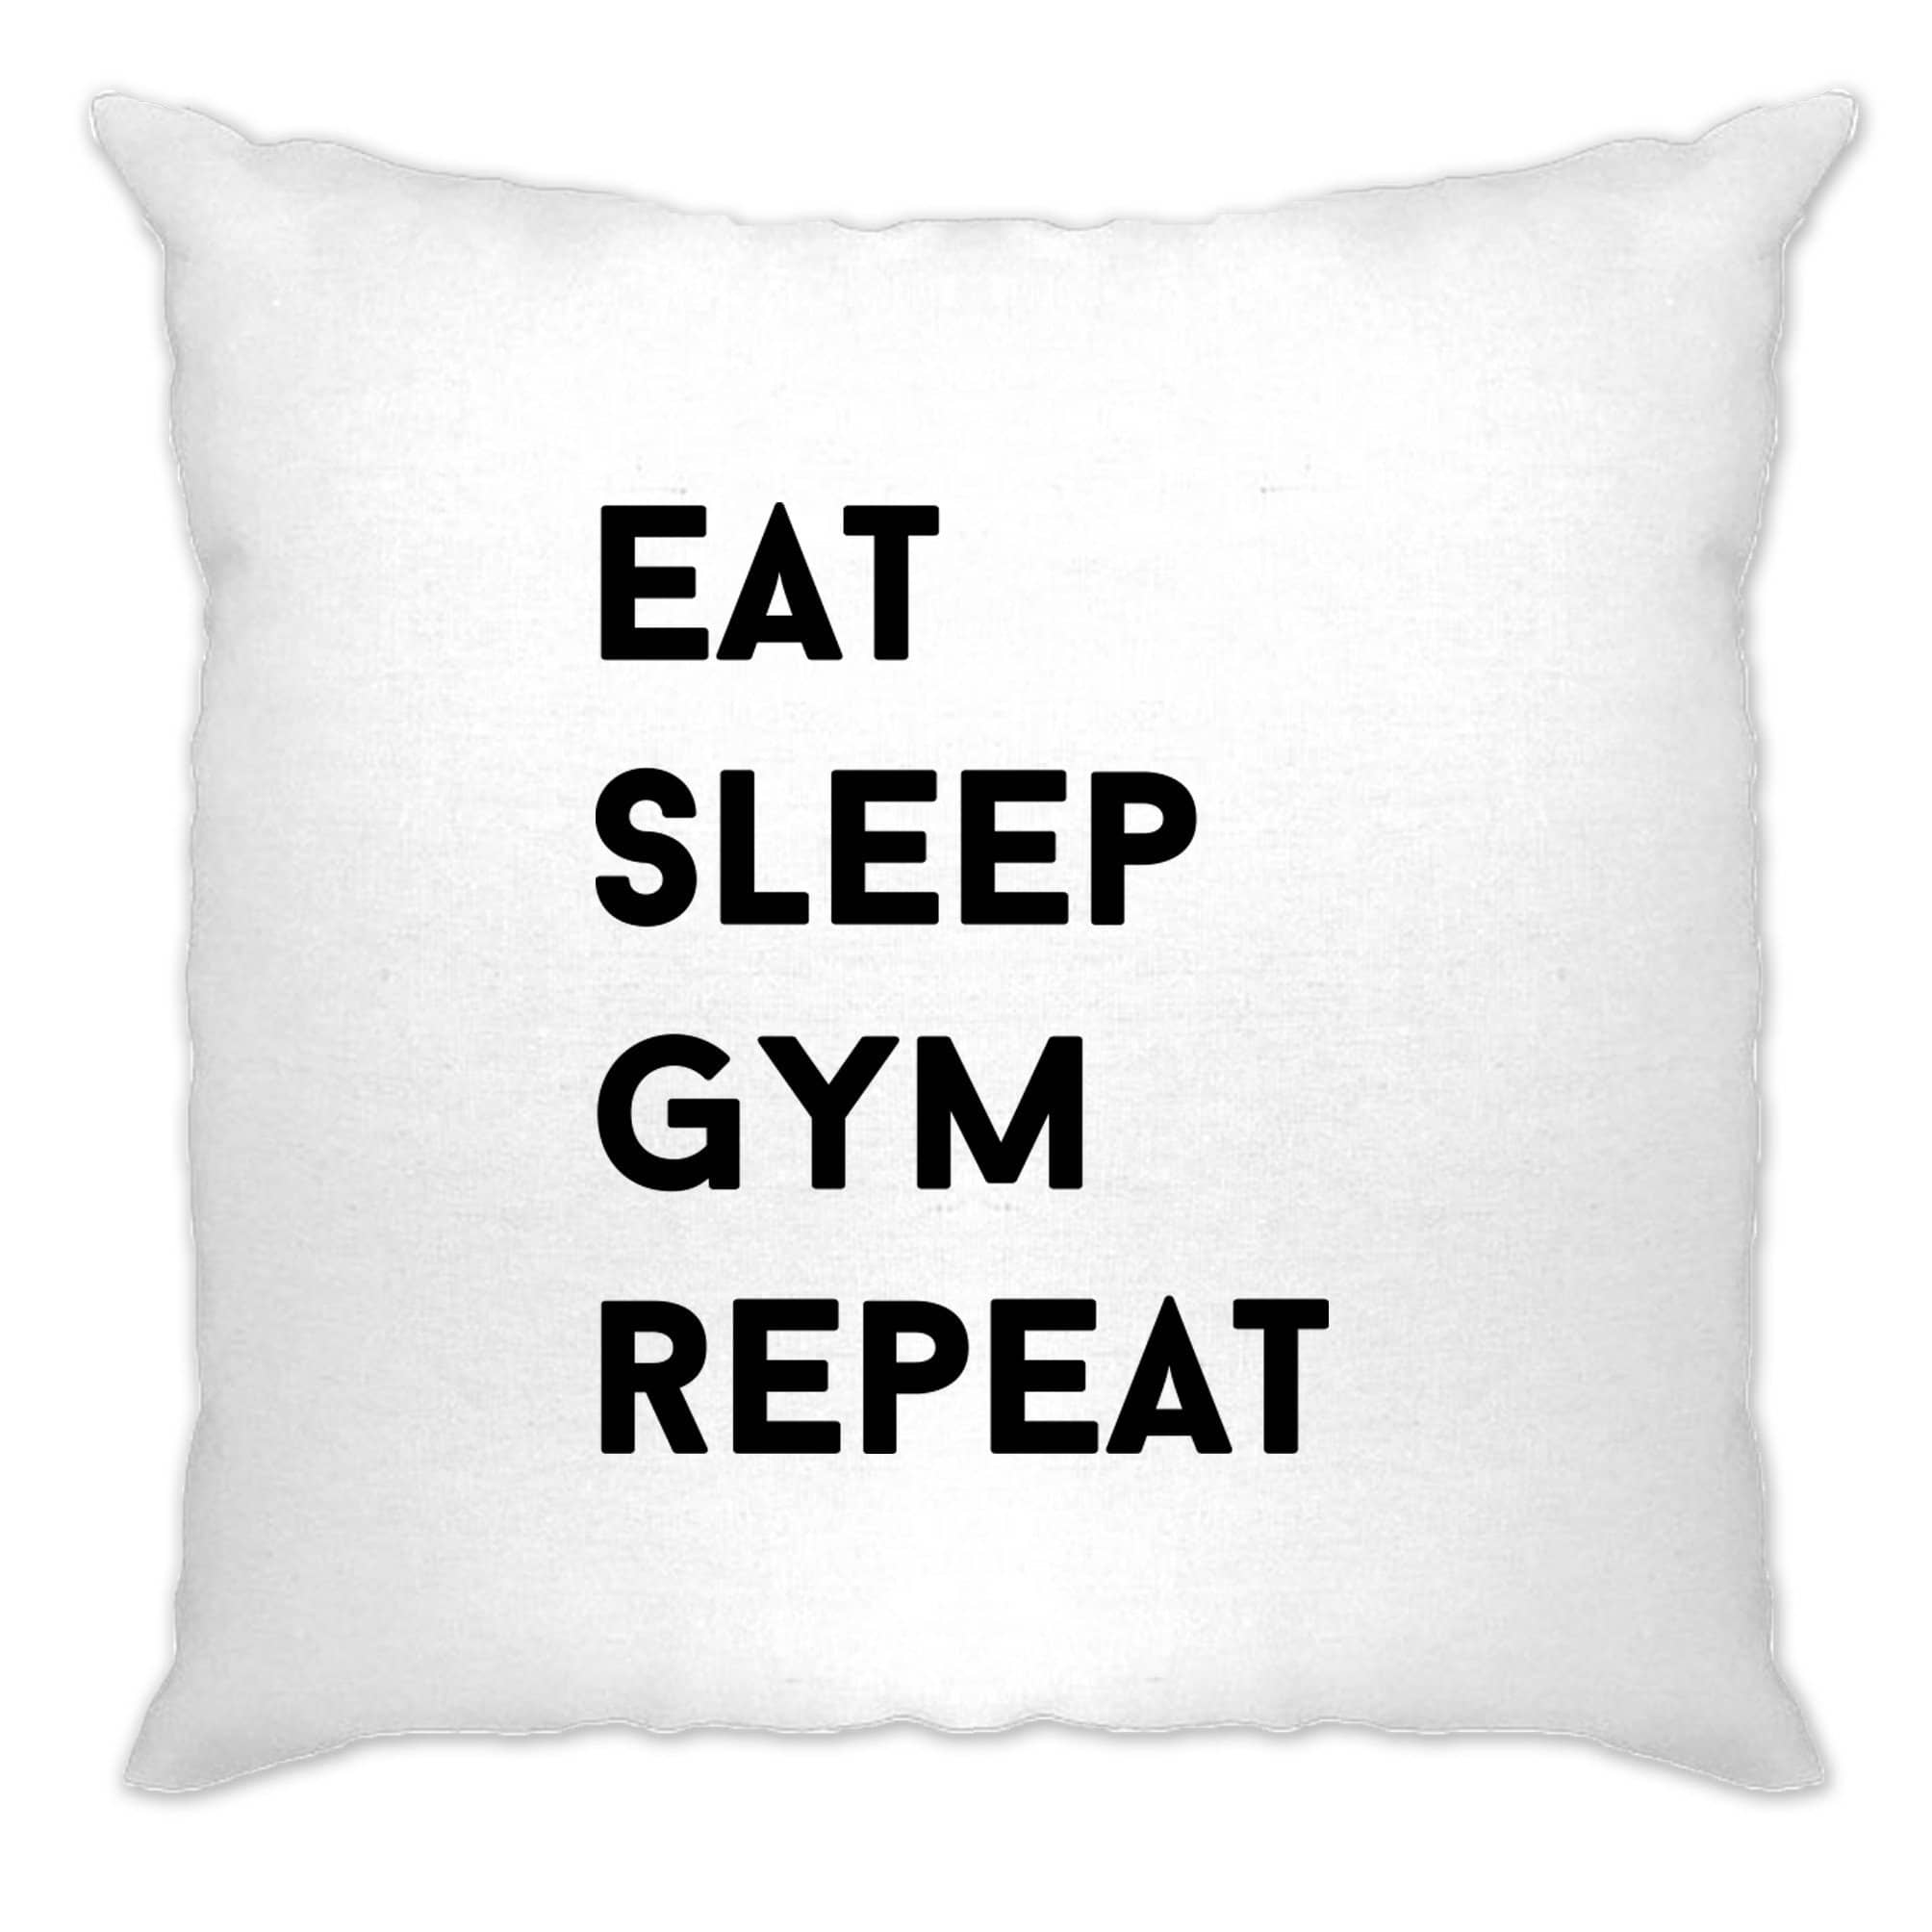 Novelty Cushion Cover Eat, Sleep, Gym, Repeat Slogan